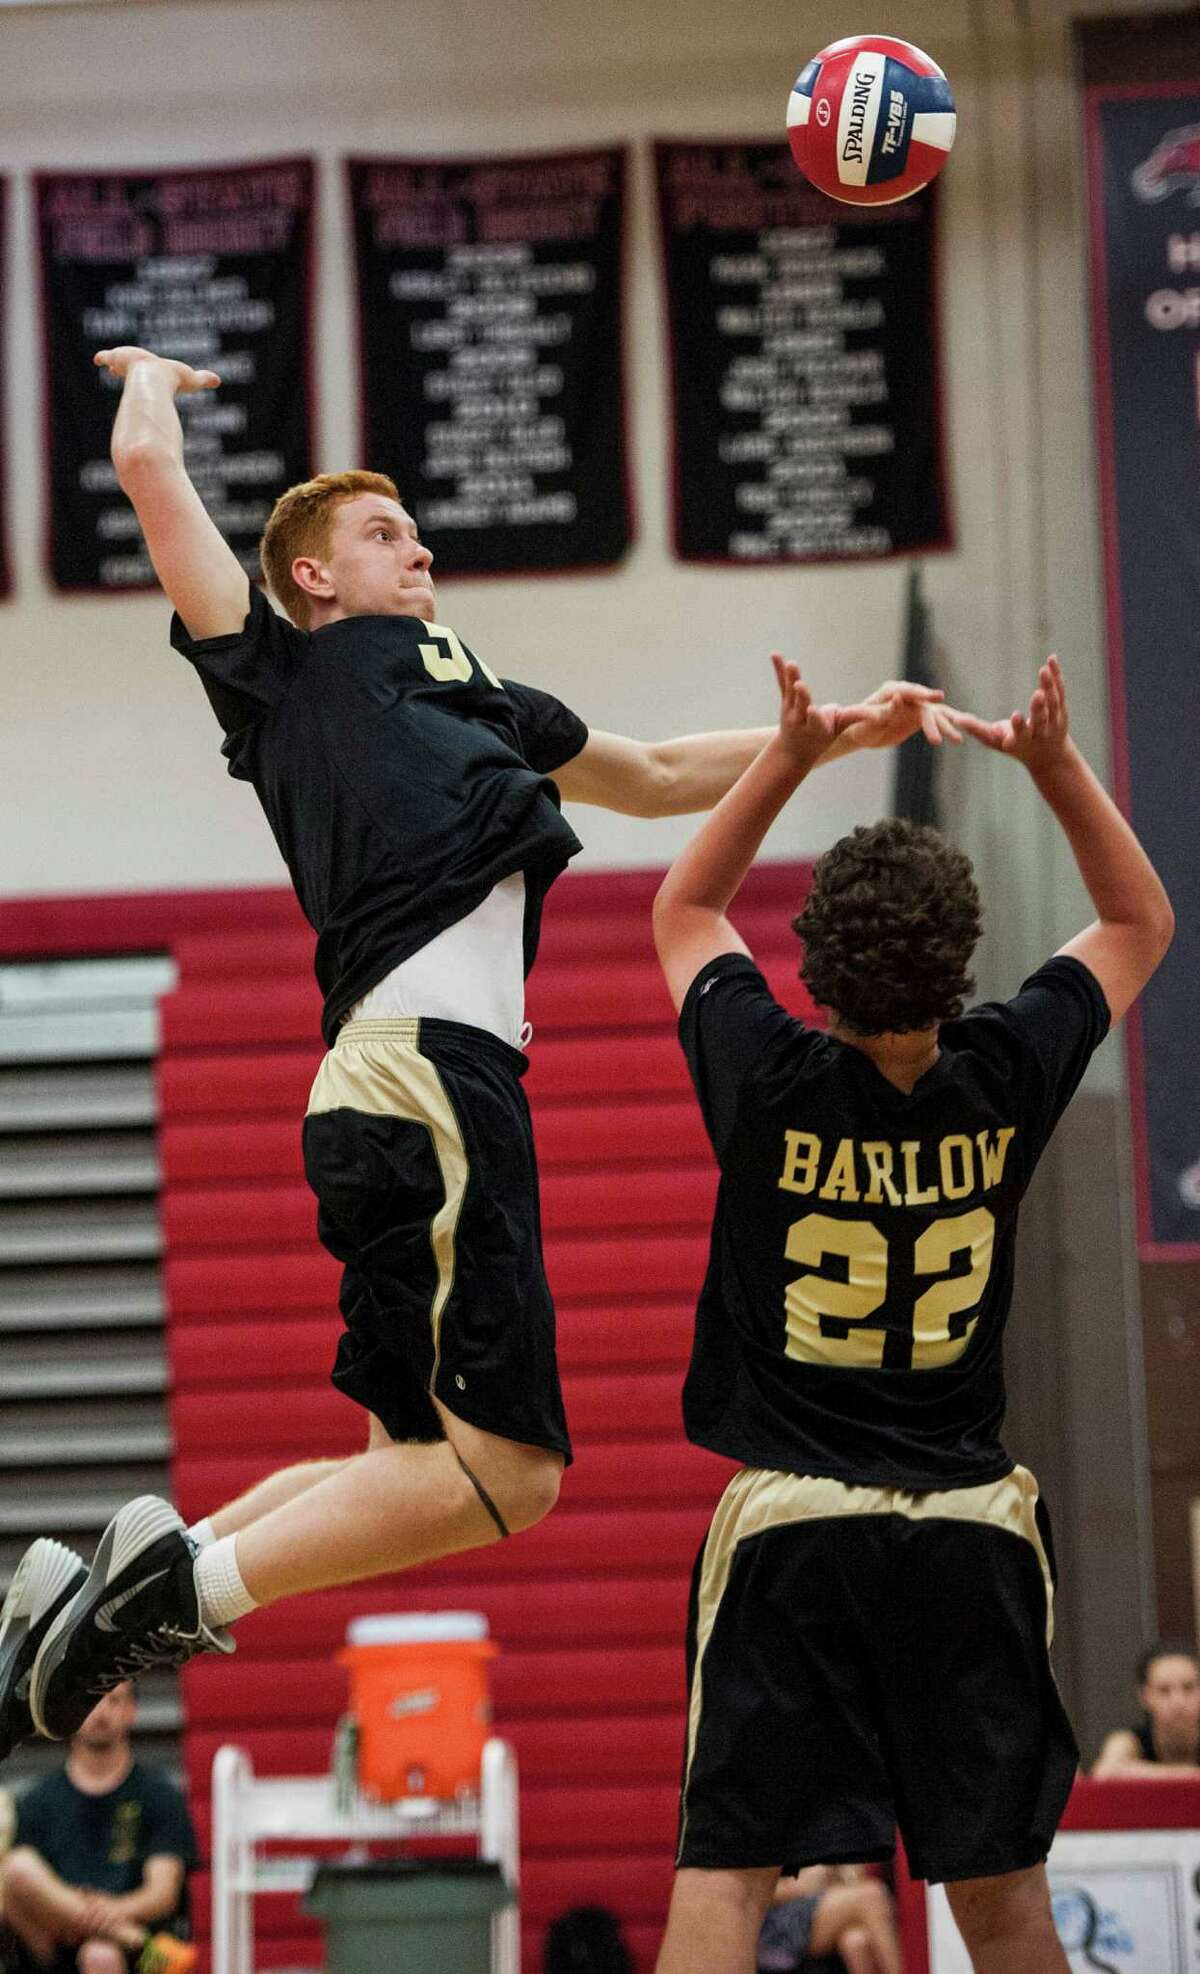 Joel Barlow high school's Chatham Studer goes up to spike the ball during a CIAC class M semifinal boys volleyball game against Newington high school played at Fairfield Warde high school, Fairfield, CT on Tuesday, June 10th, 2014.